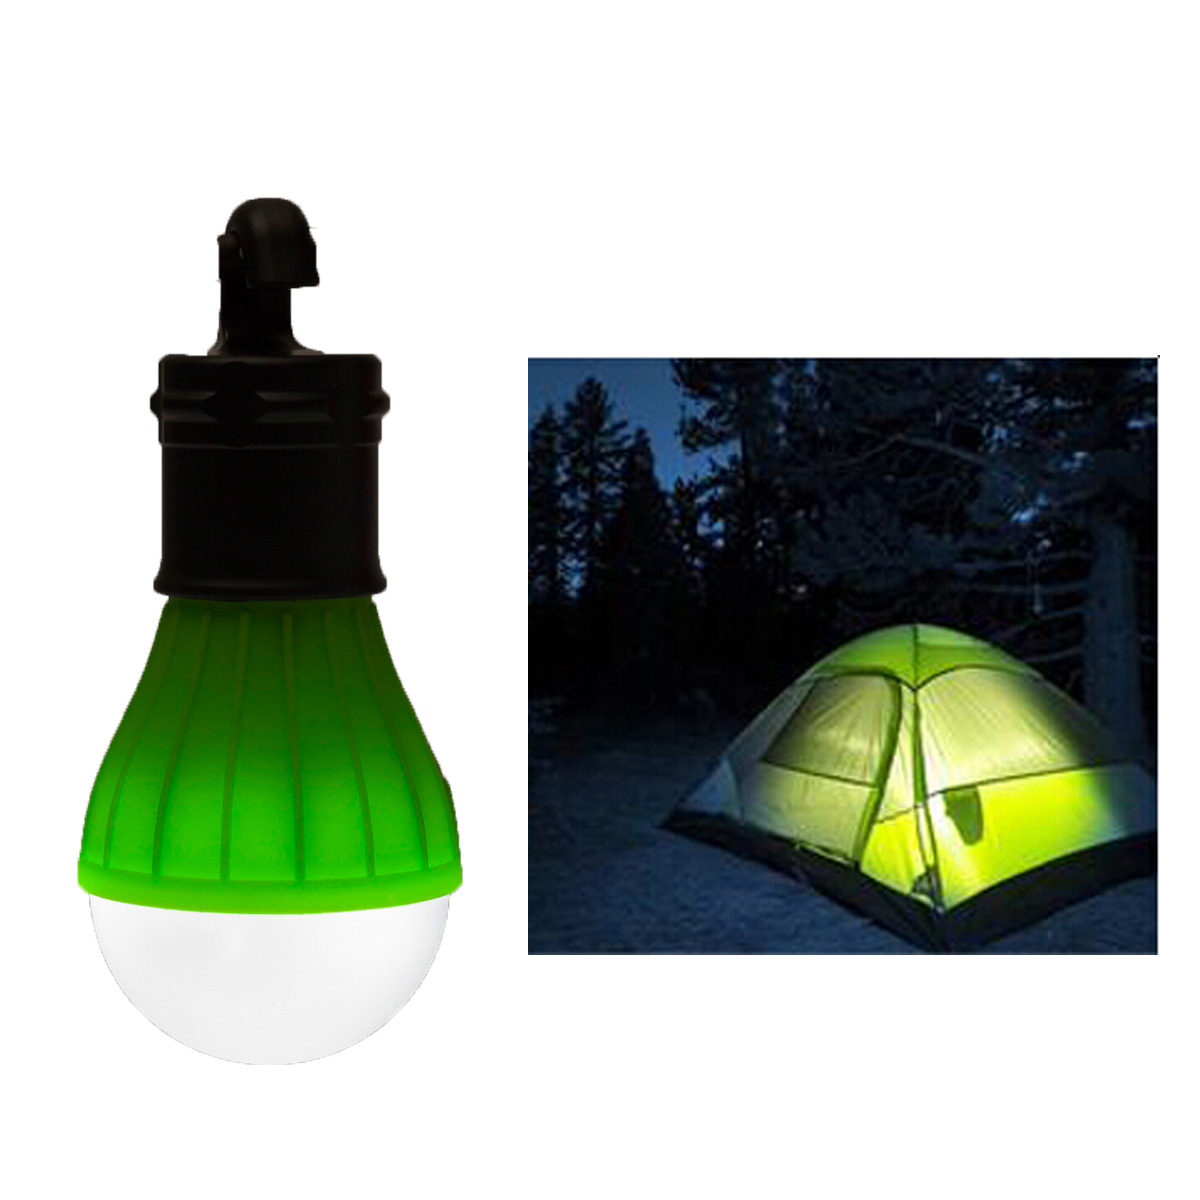 outdoor led camping h nger lampe licht laterne zeltlampe campingleuchte birne ebay. Black Bedroom Furniture Sets. Home Design Ideas